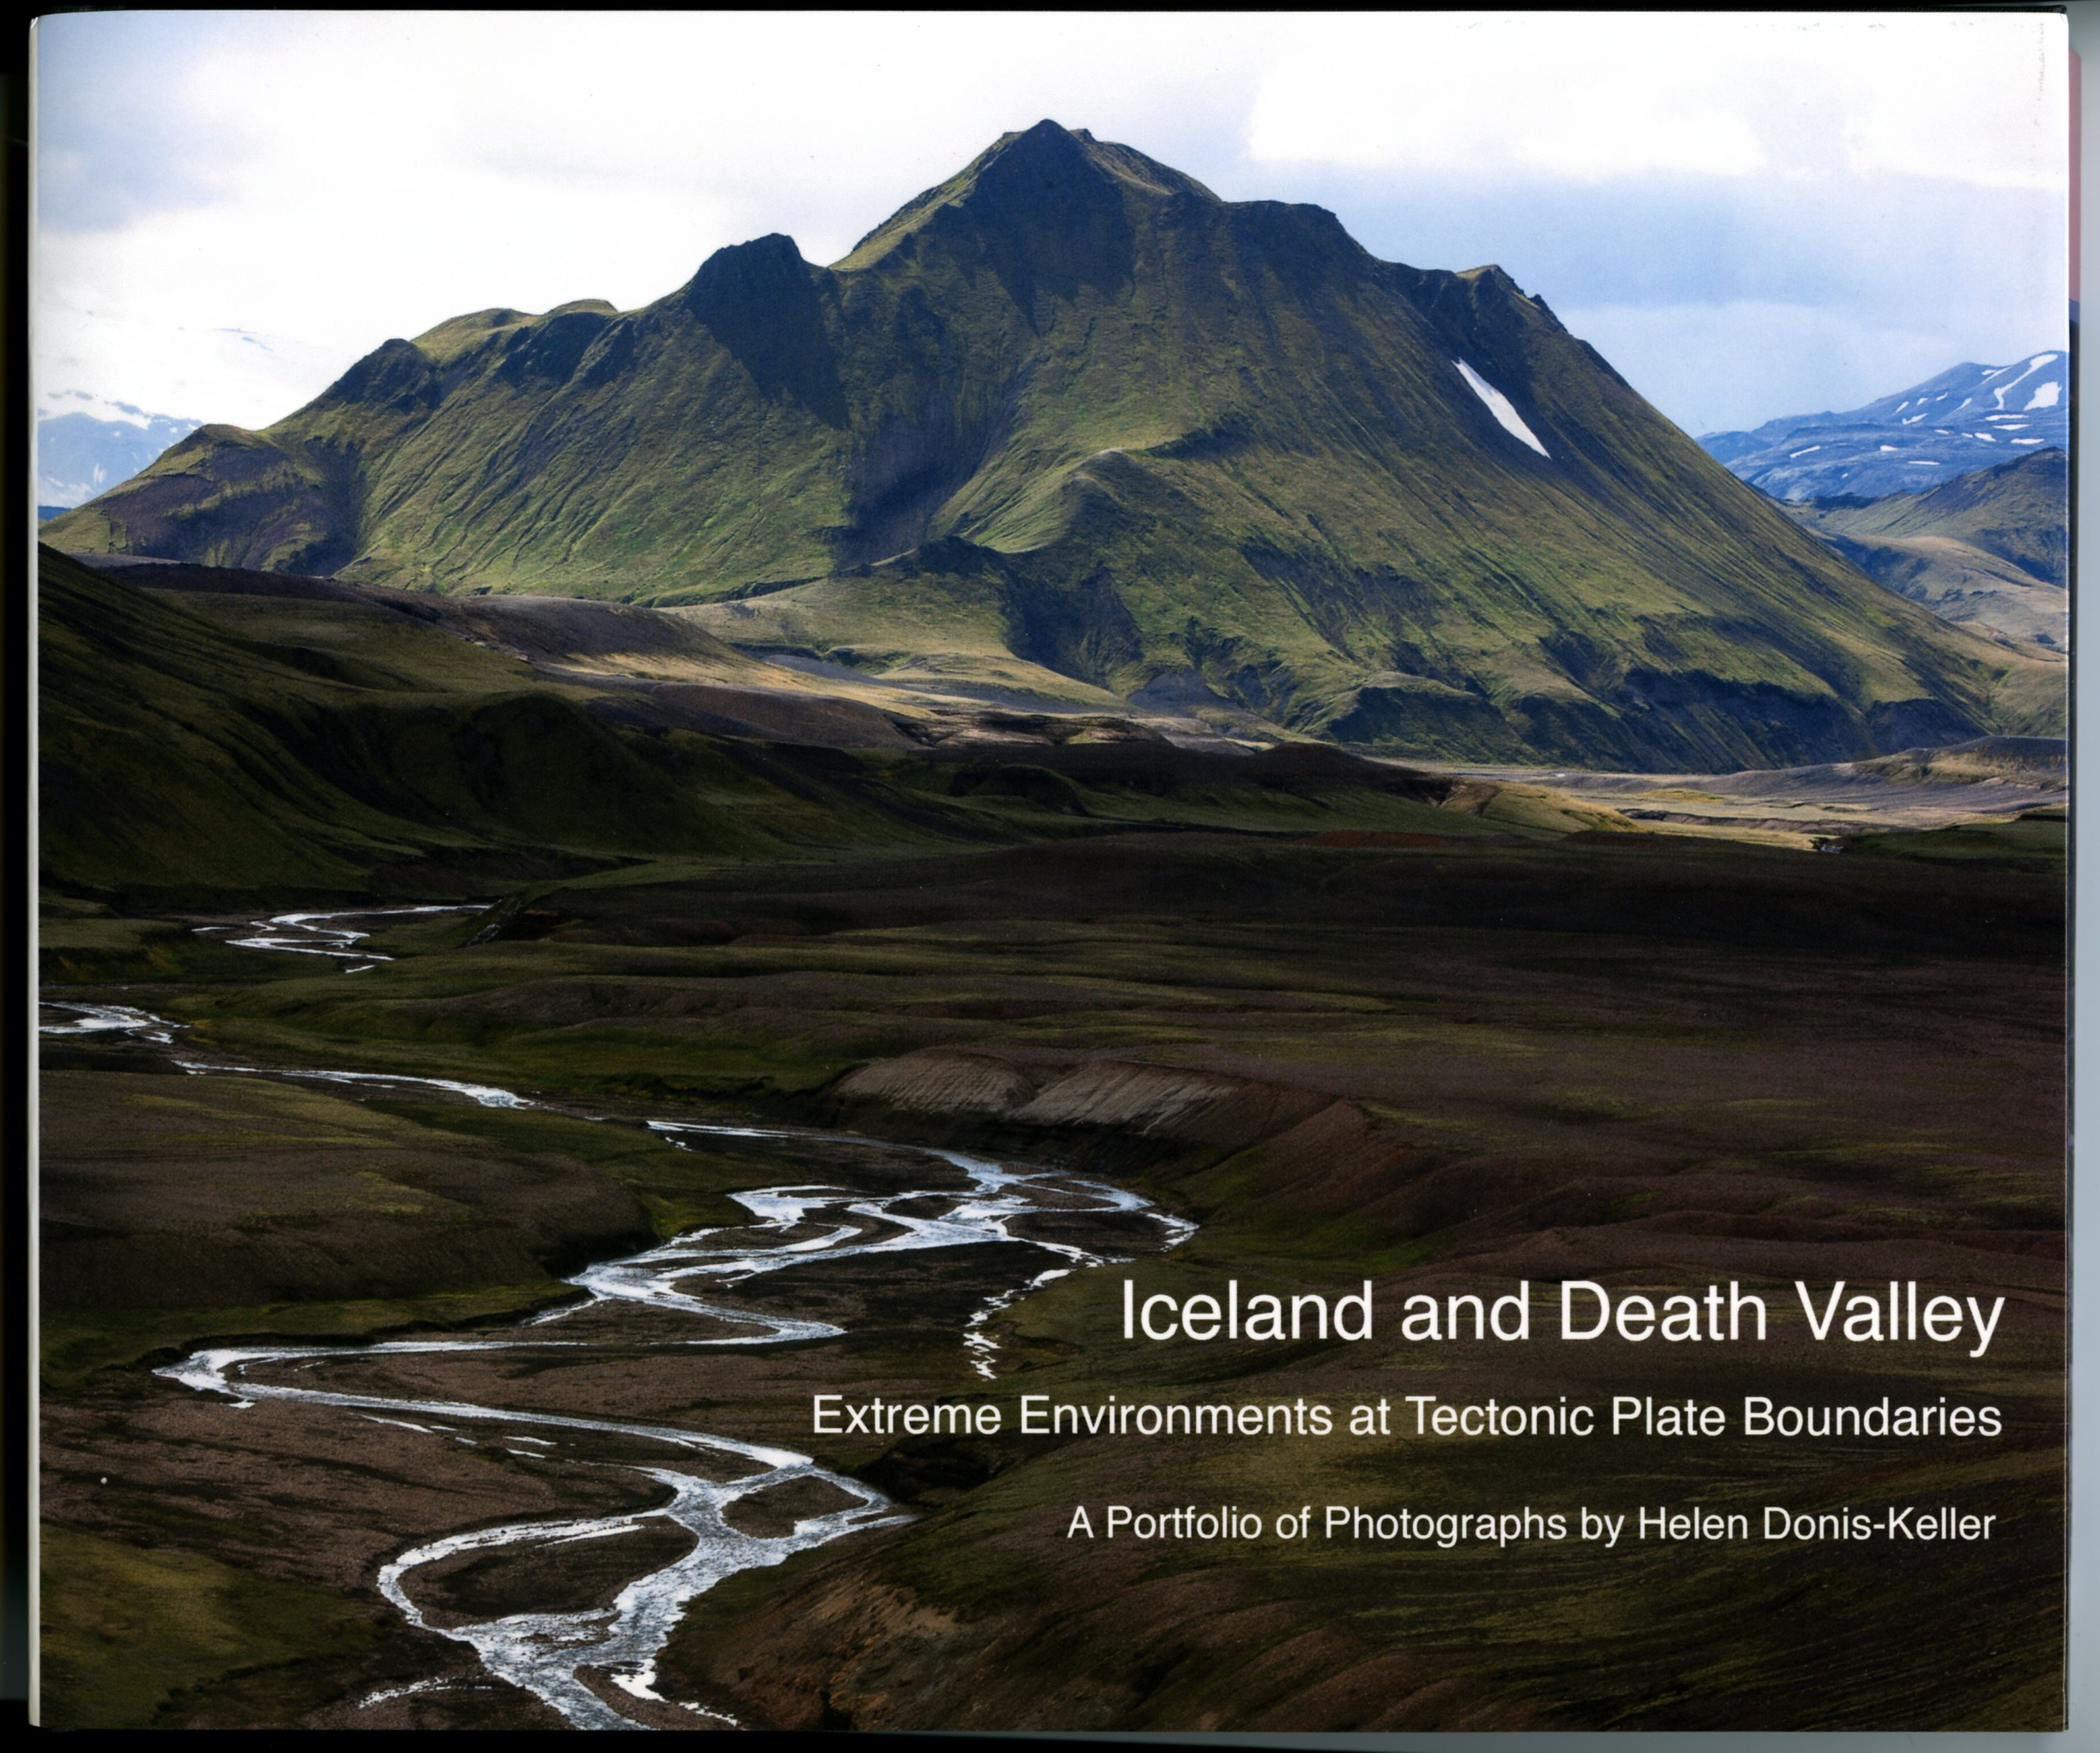 Iceland and Death Valley